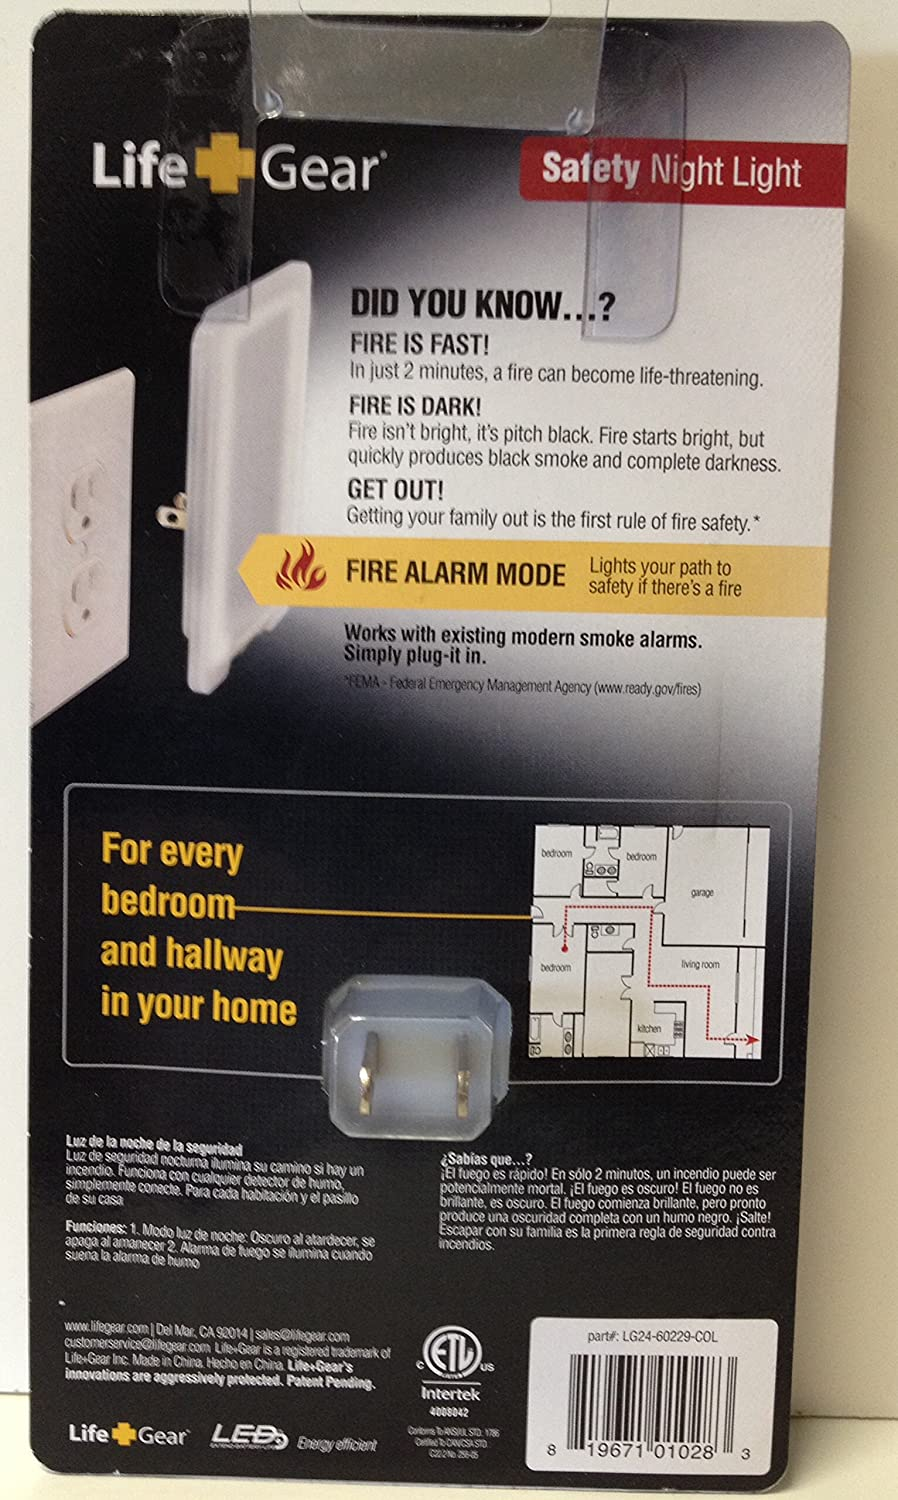 Life+Gear Fire Safety Night Light